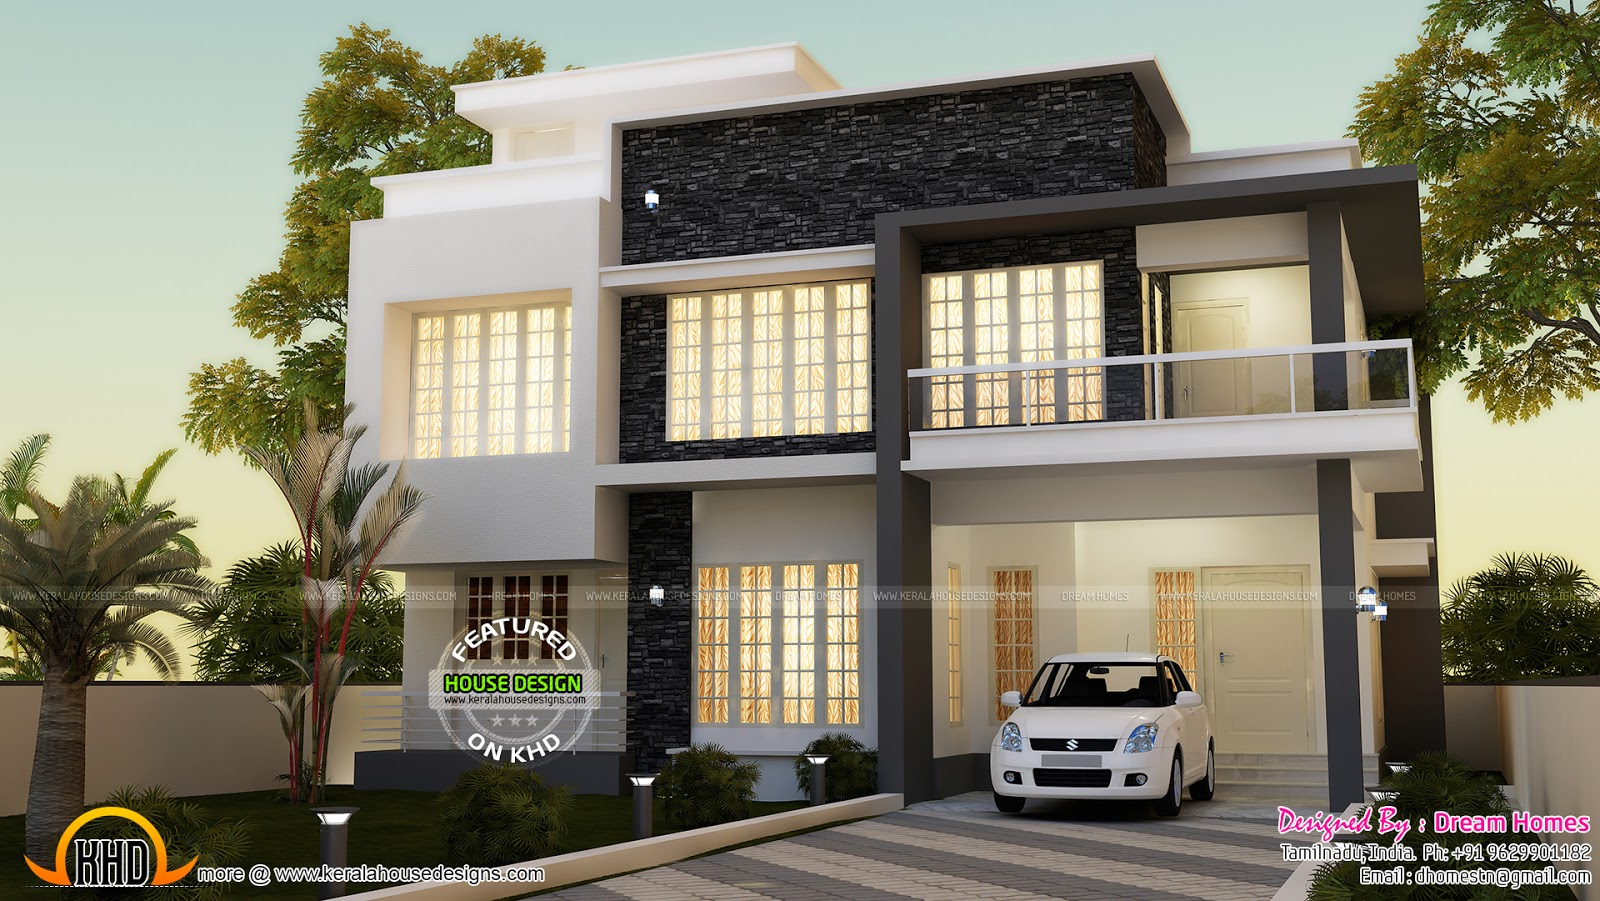 Simple Contemporary House And Plan Kerala Home Design And Floor Plans: simple modern house designs and floor plans